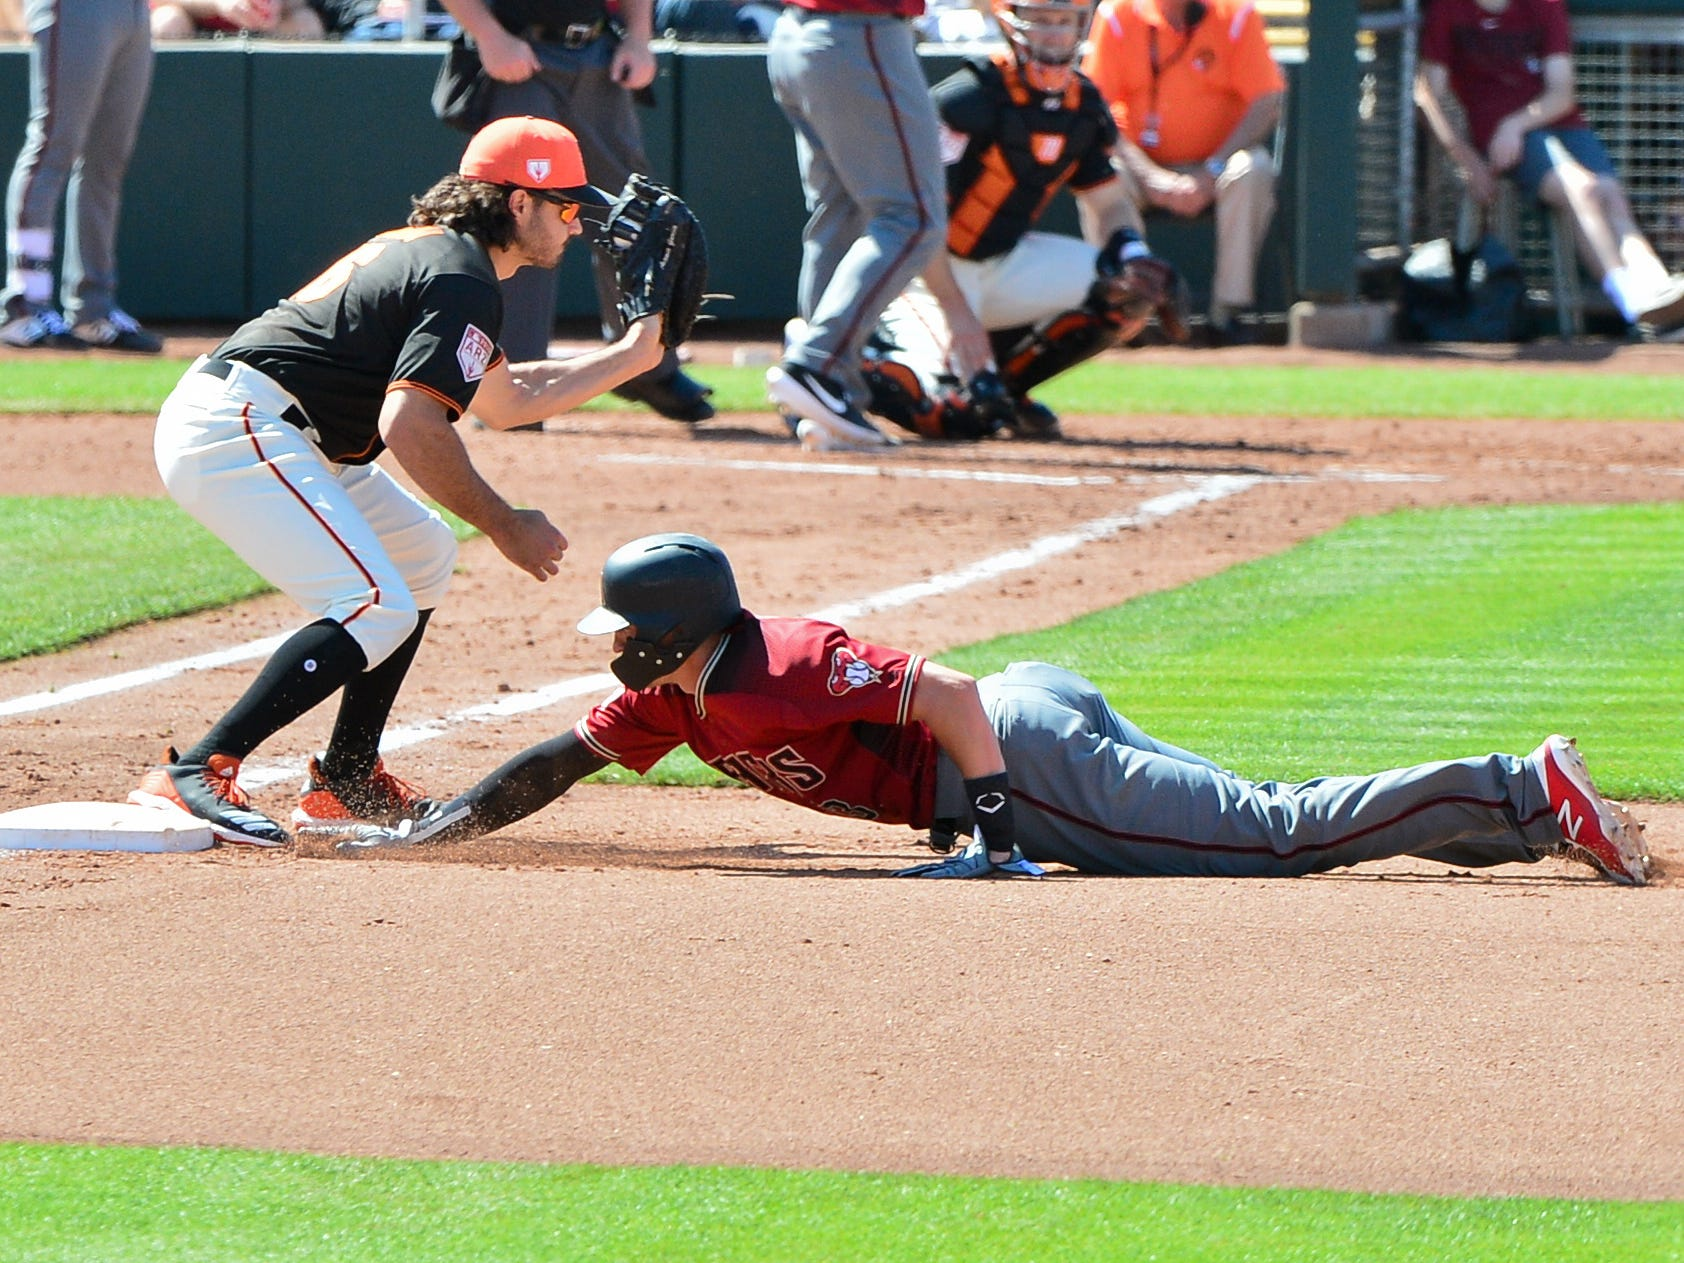 Mar 23, 2019; Scottsdale, AZ, USA; Arizona Diamondbacks shortstop Nick Ahmed (13) tags up as San Francisco Giants catcher Aramis Garcia (16) catches the ball during the fourth inning at Scottsdale Stadium.